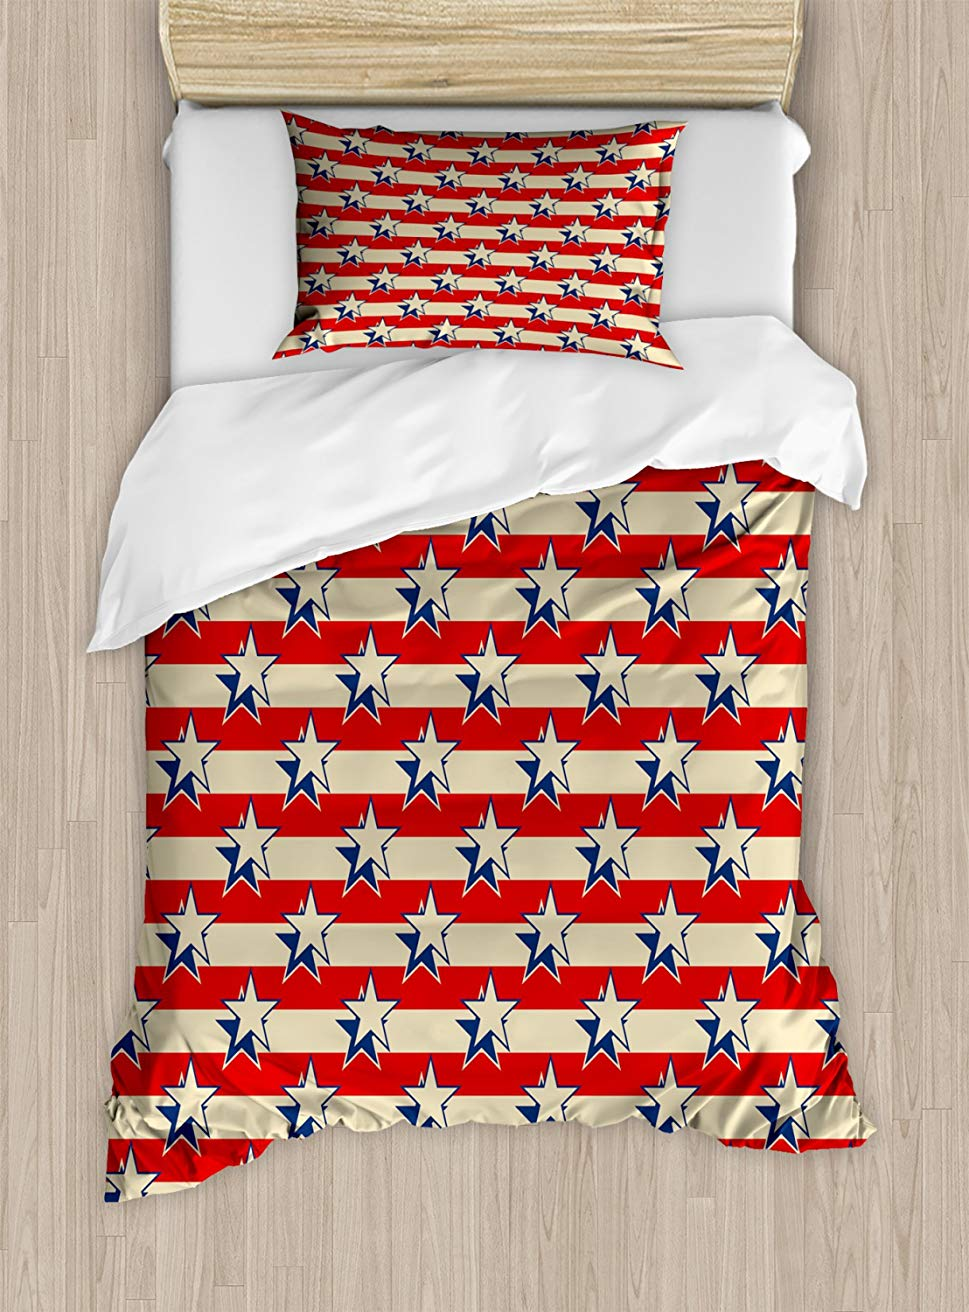 USA Duvet Cover Set  Nostalgic Independence Day Poster Pattern with Large Stars Western Graphic, Decorative 2 Piece Bedding Set USA Duvet Cover Set  Nostalgic Independence Day Poster Pattern with Large Stars Western Graphic, Decorative 2 Piece Bedding Set